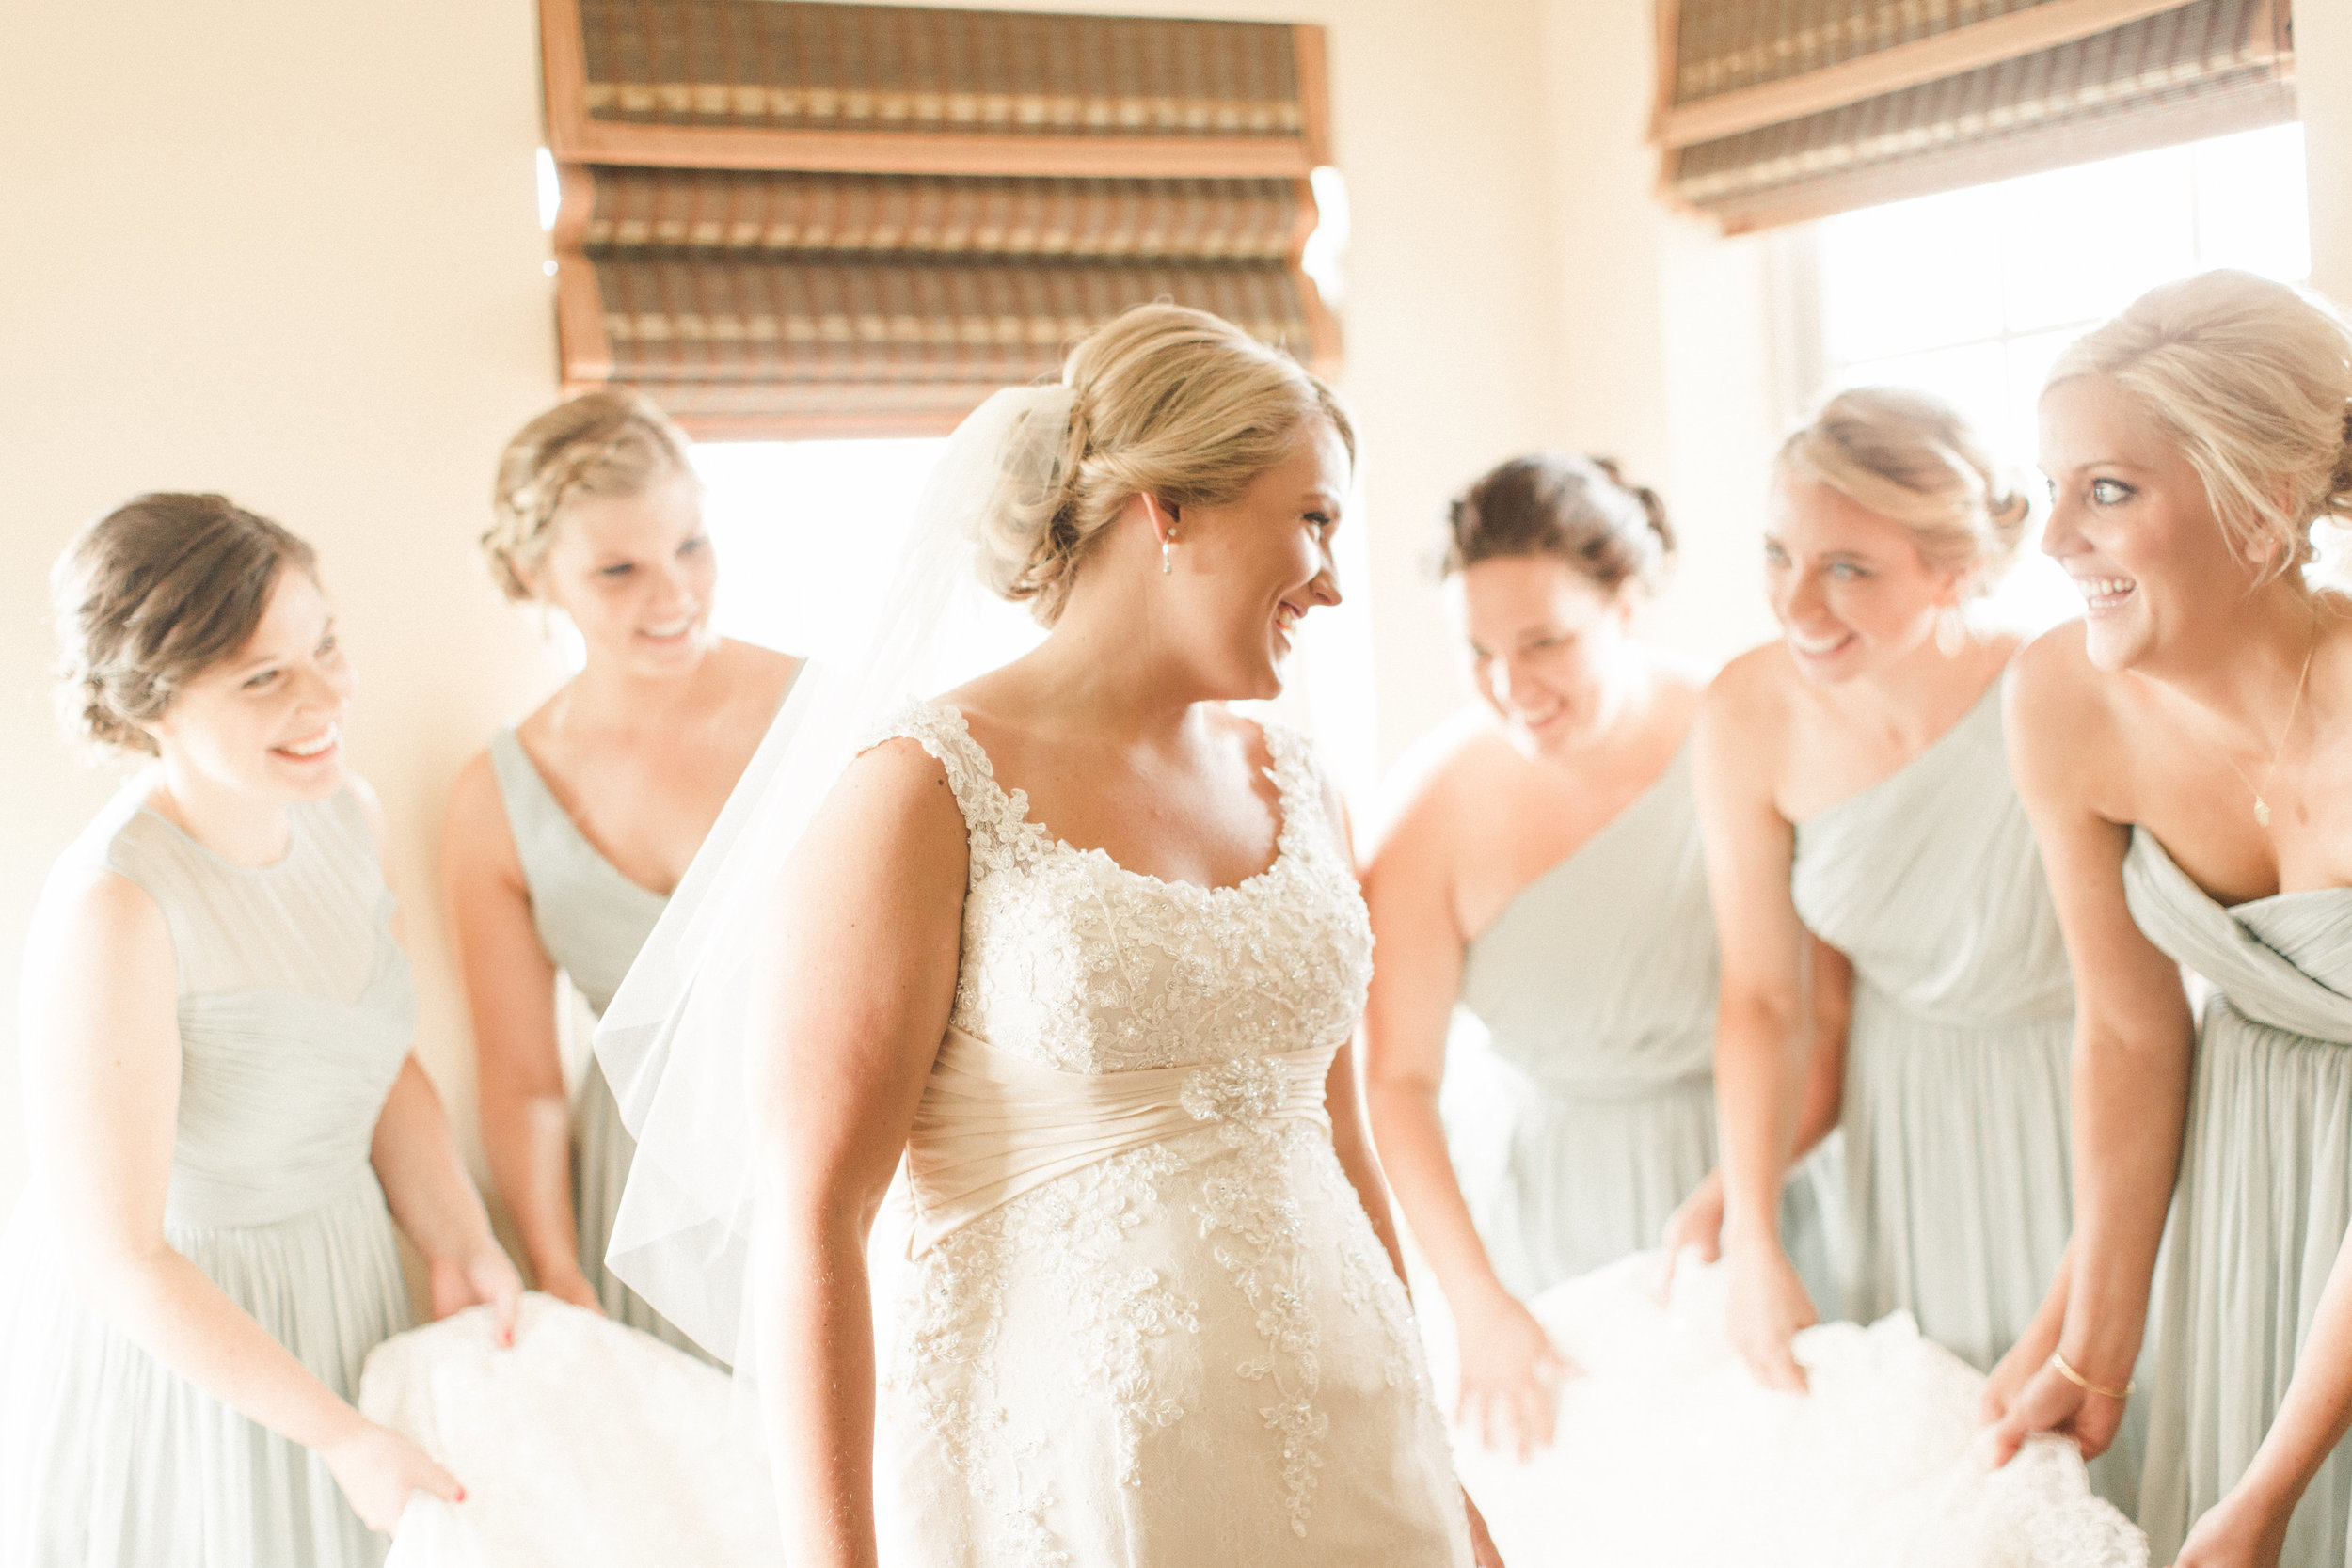 bride-and-her-bridesmaids-getting-ready-photo-white-dress-green-bridesmaids-dress